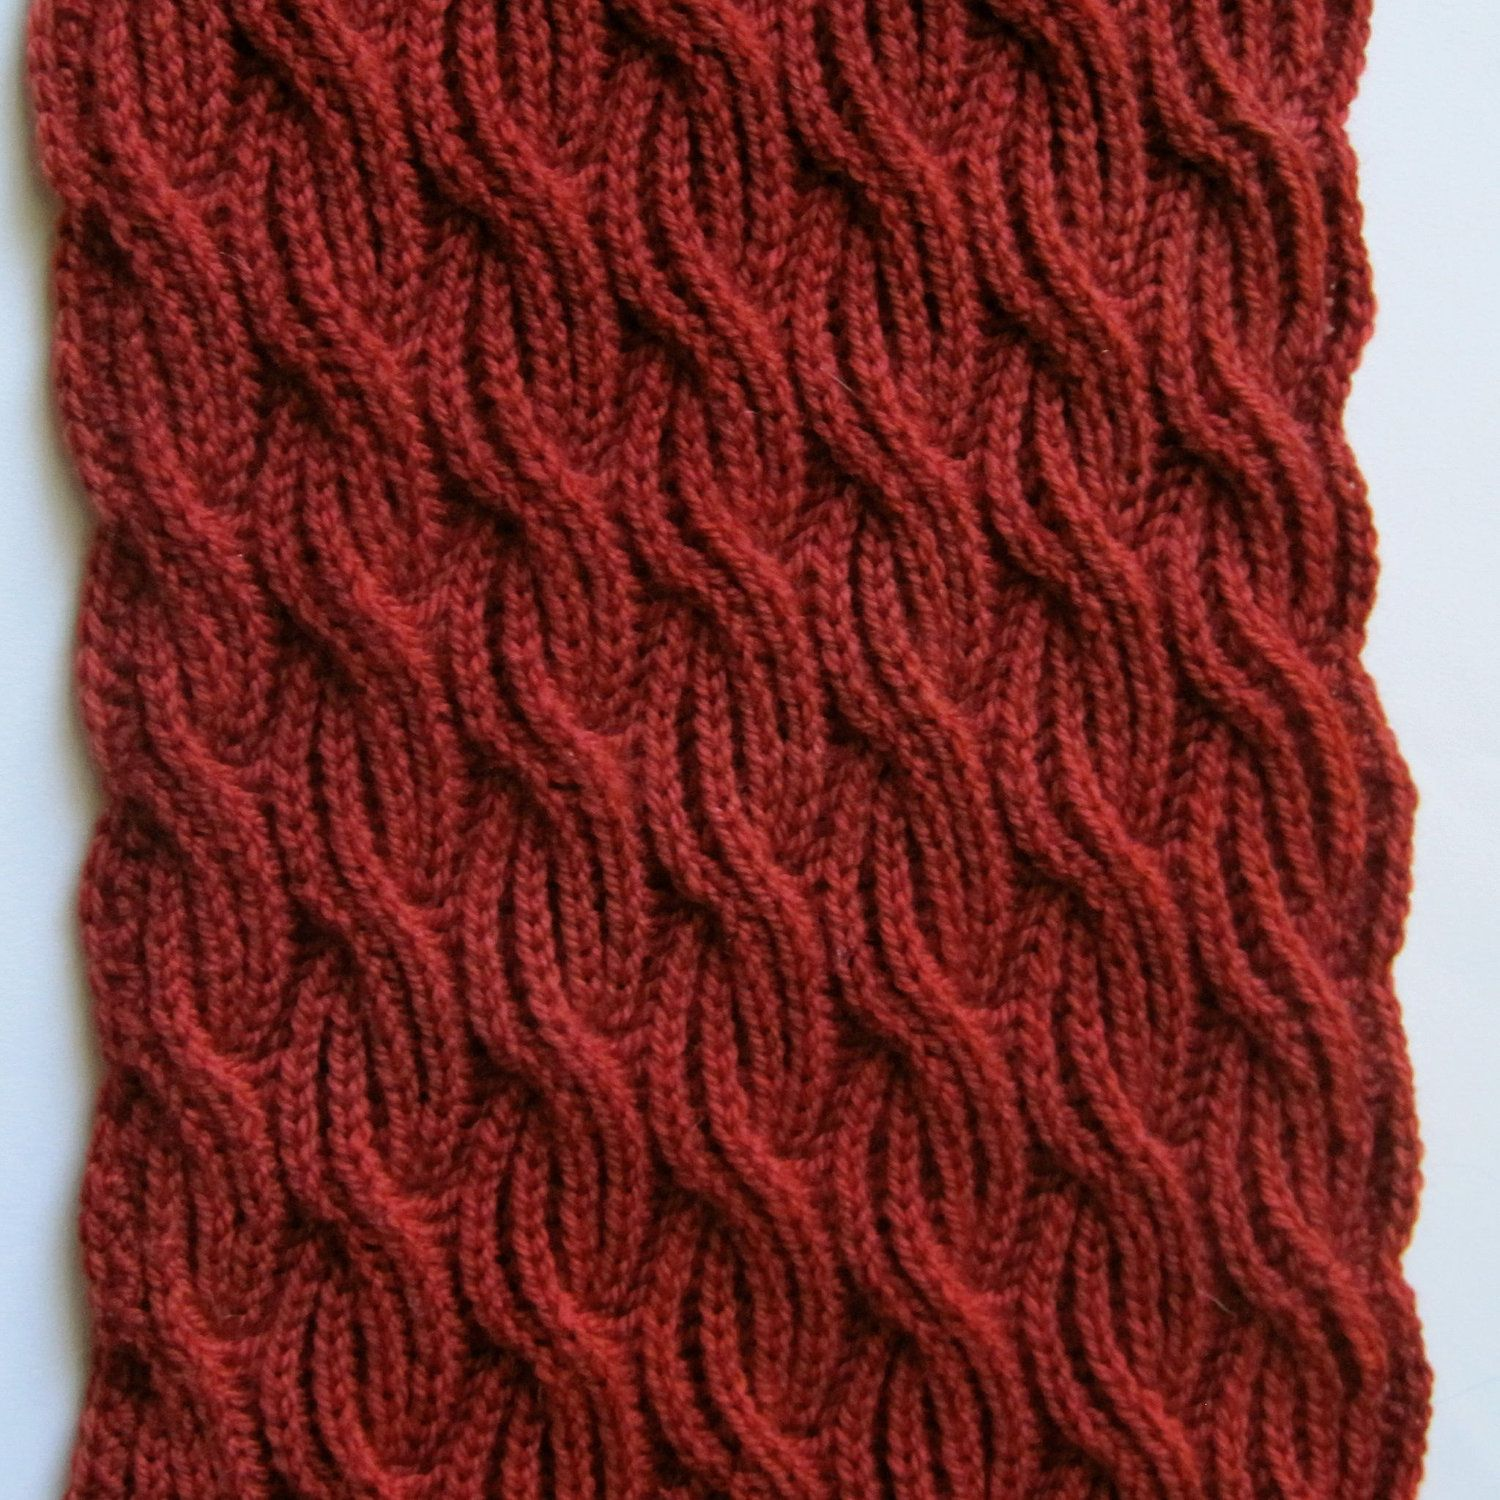 Knit Scarf Pattern: Brioche Cabled Turtleneck Scarf Knitting Pattern ...